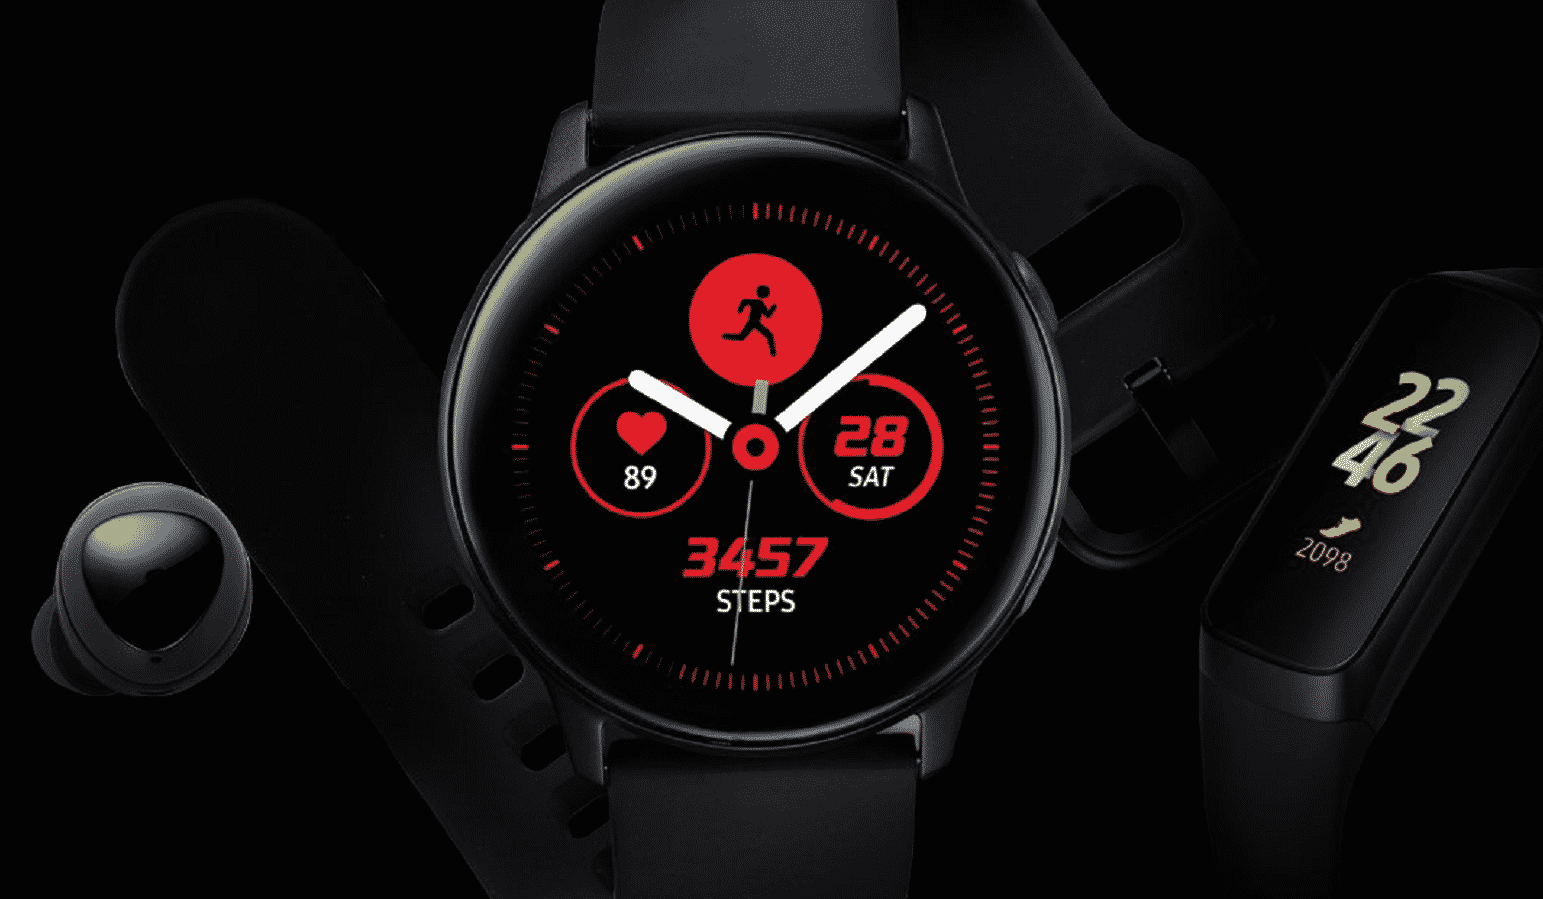 samsung wearables on a black background